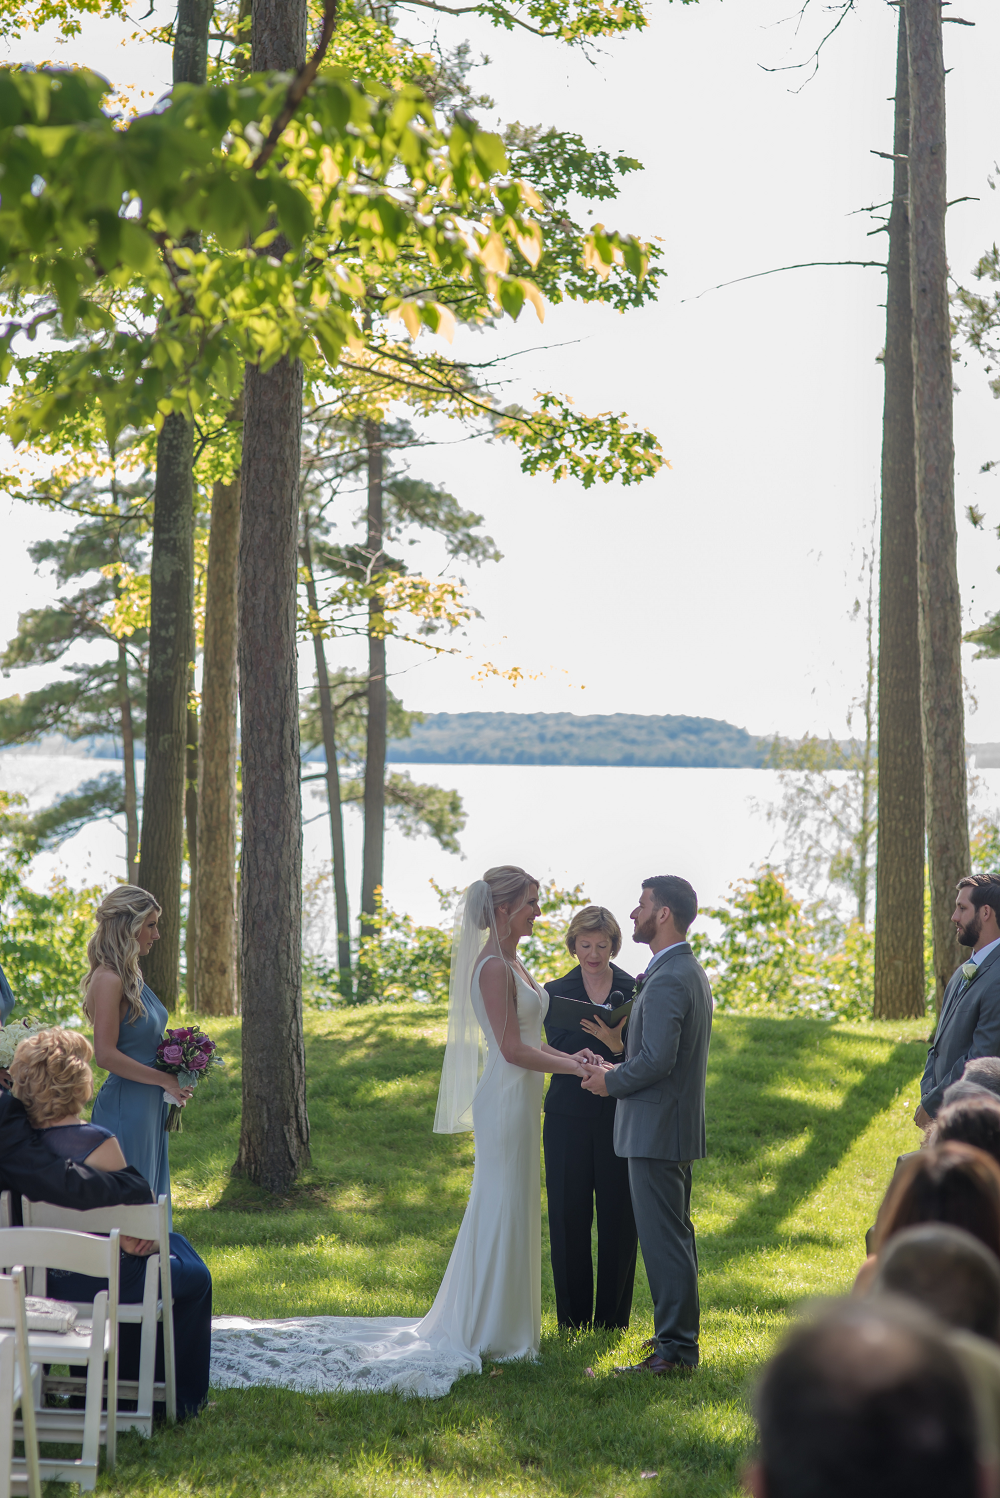 DESTINATION WEDDING IN TRAVERSE CITY WITH KRISTEN AND SCOTT Vows